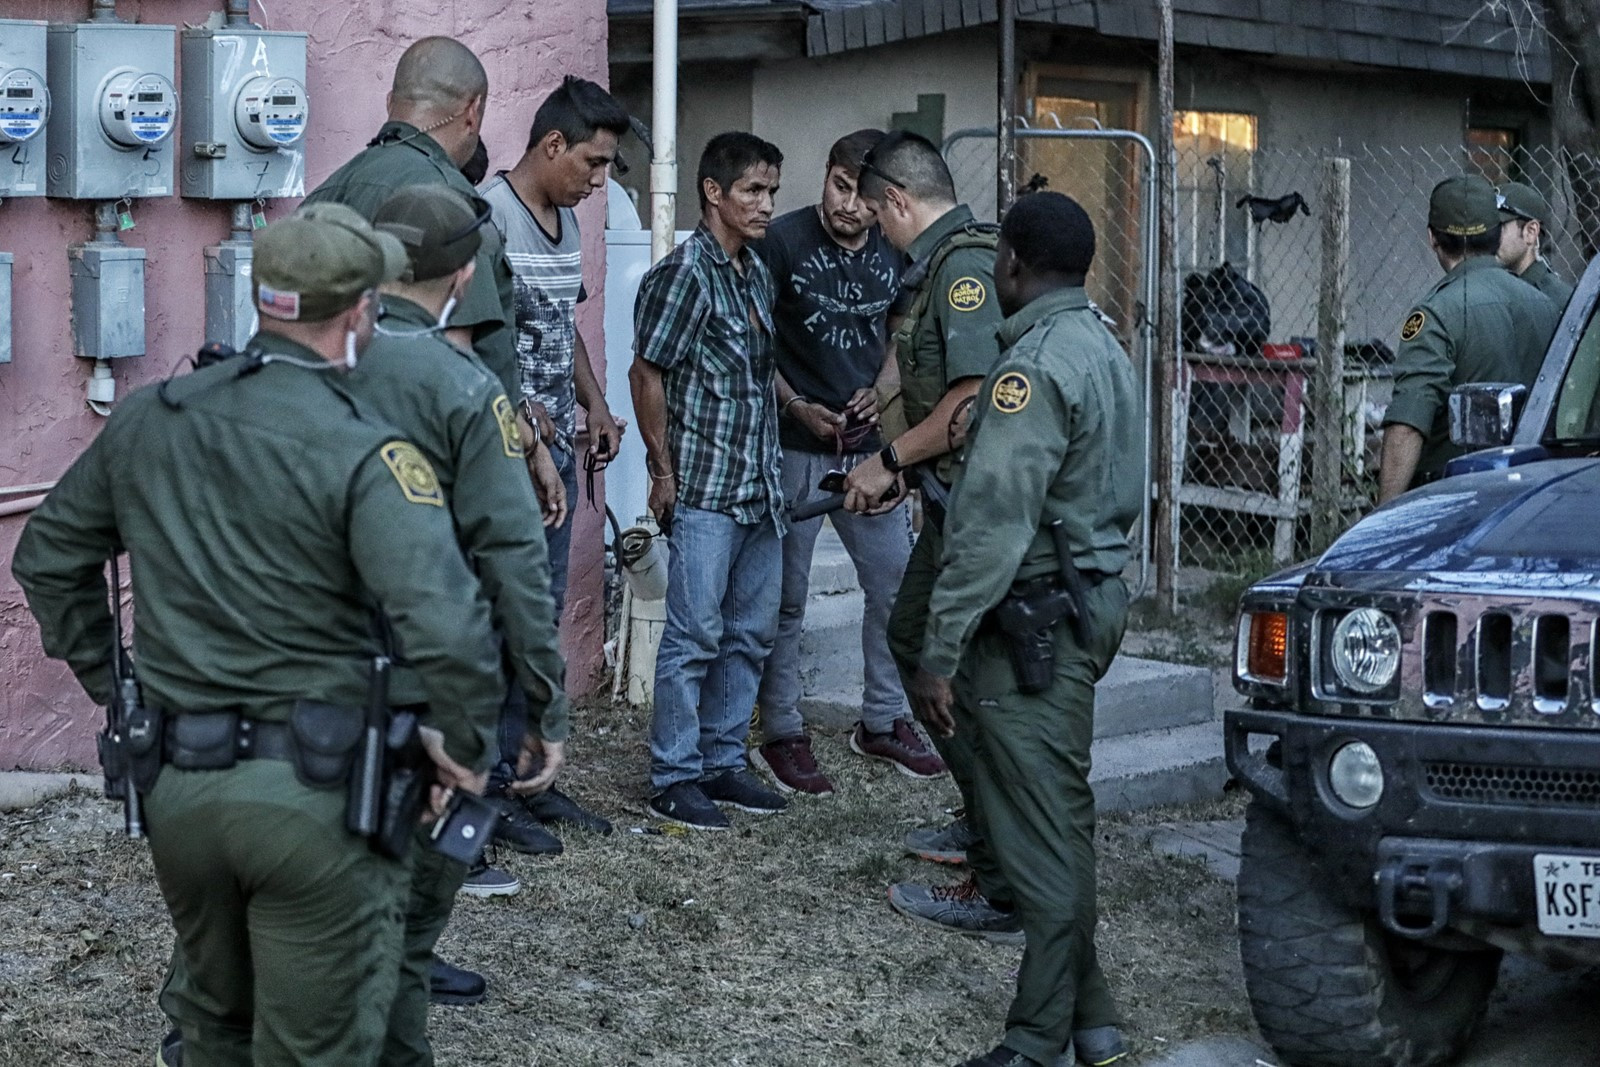 Border Patrol agents detain men at the pink apartments. Opinion of the Border Patrol is split in Roma; in the colonia, residents distrust agents. — Photograph: Robert Gauthier/Los Angeles Times.